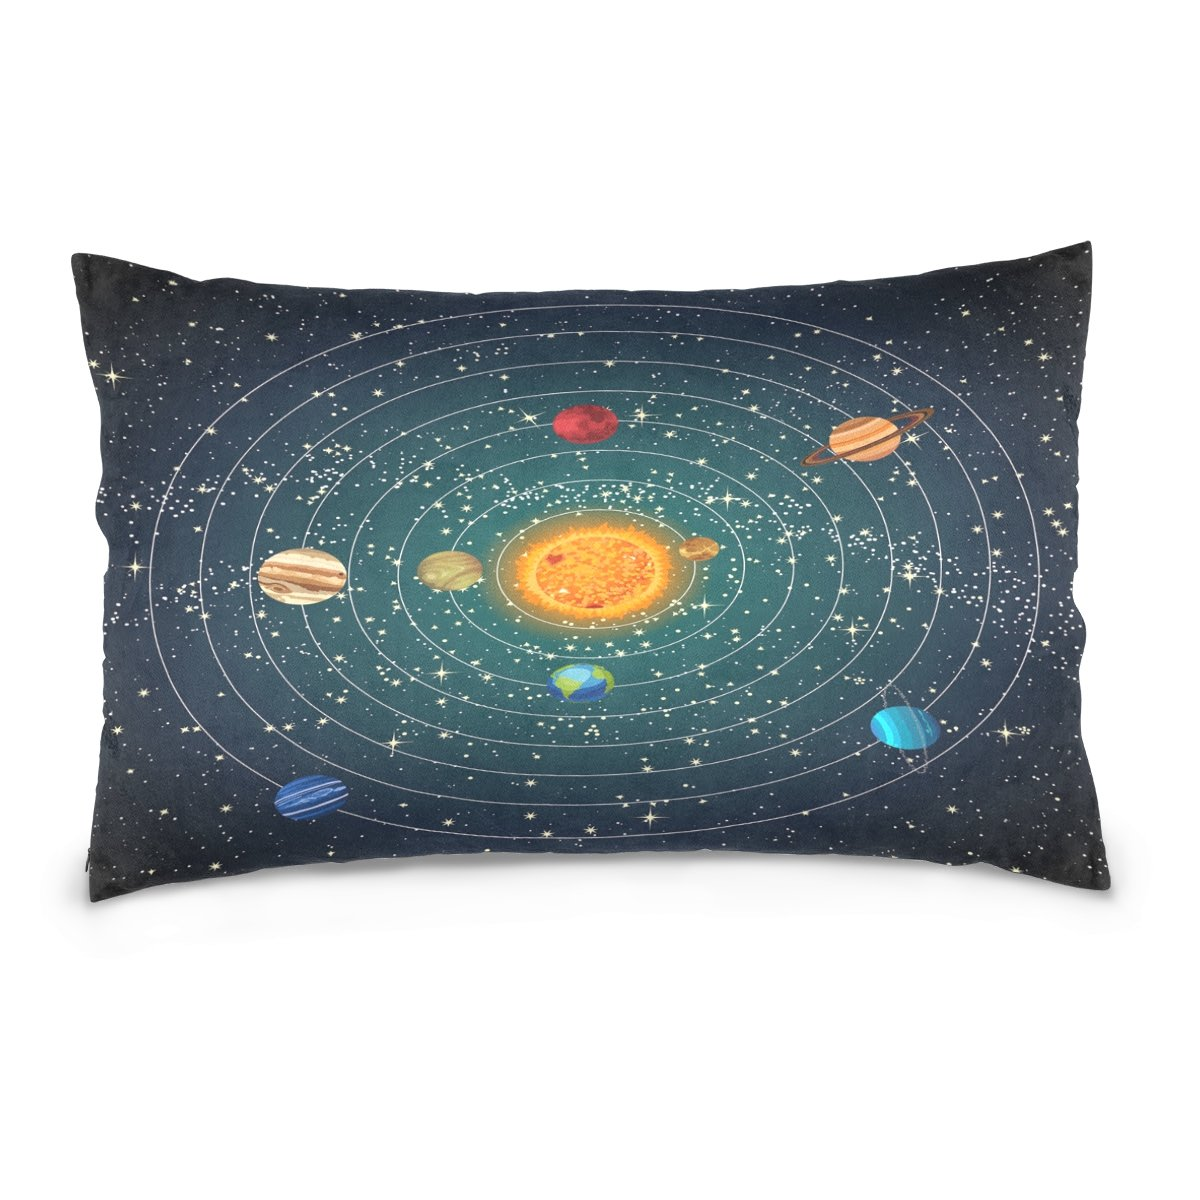 ALAZA Solar System with Sun Planet and Star Cotton Lint Pillow Case,Double-sided Printing Home Decor Pillowcase Size 16''x24'',for Bedroom Women Girl Boy